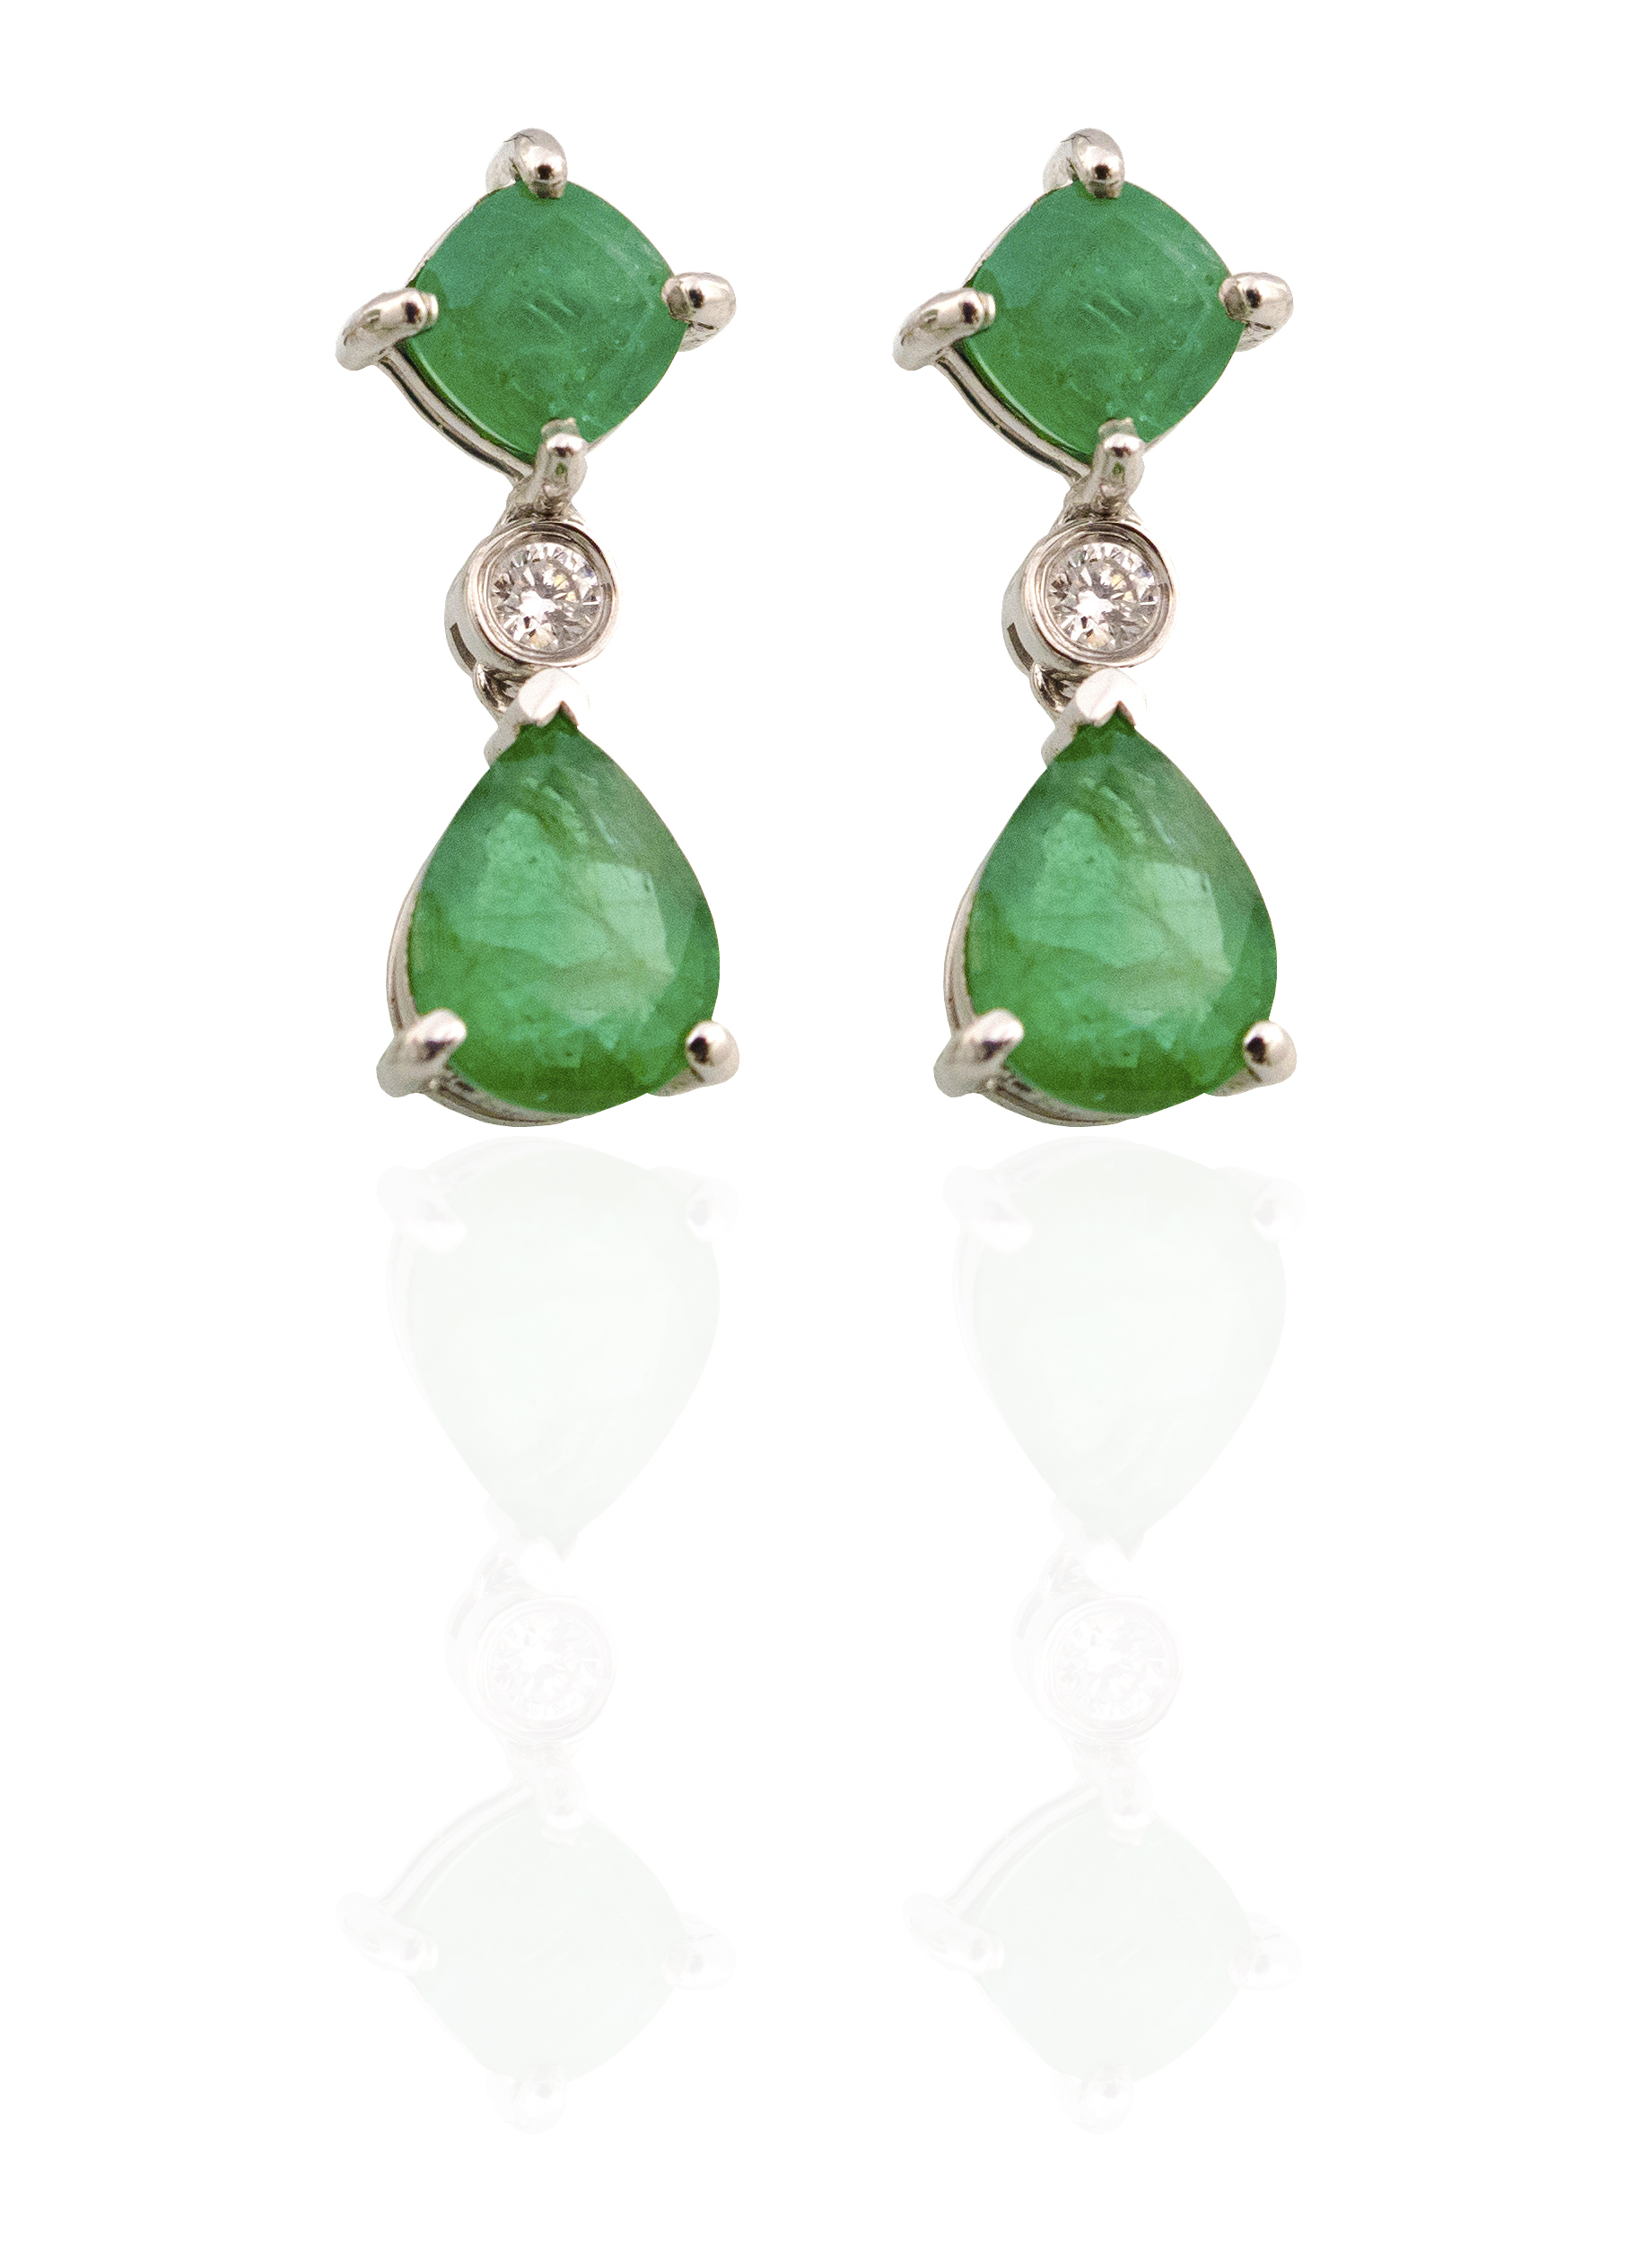 Diamond Emerald earrings!